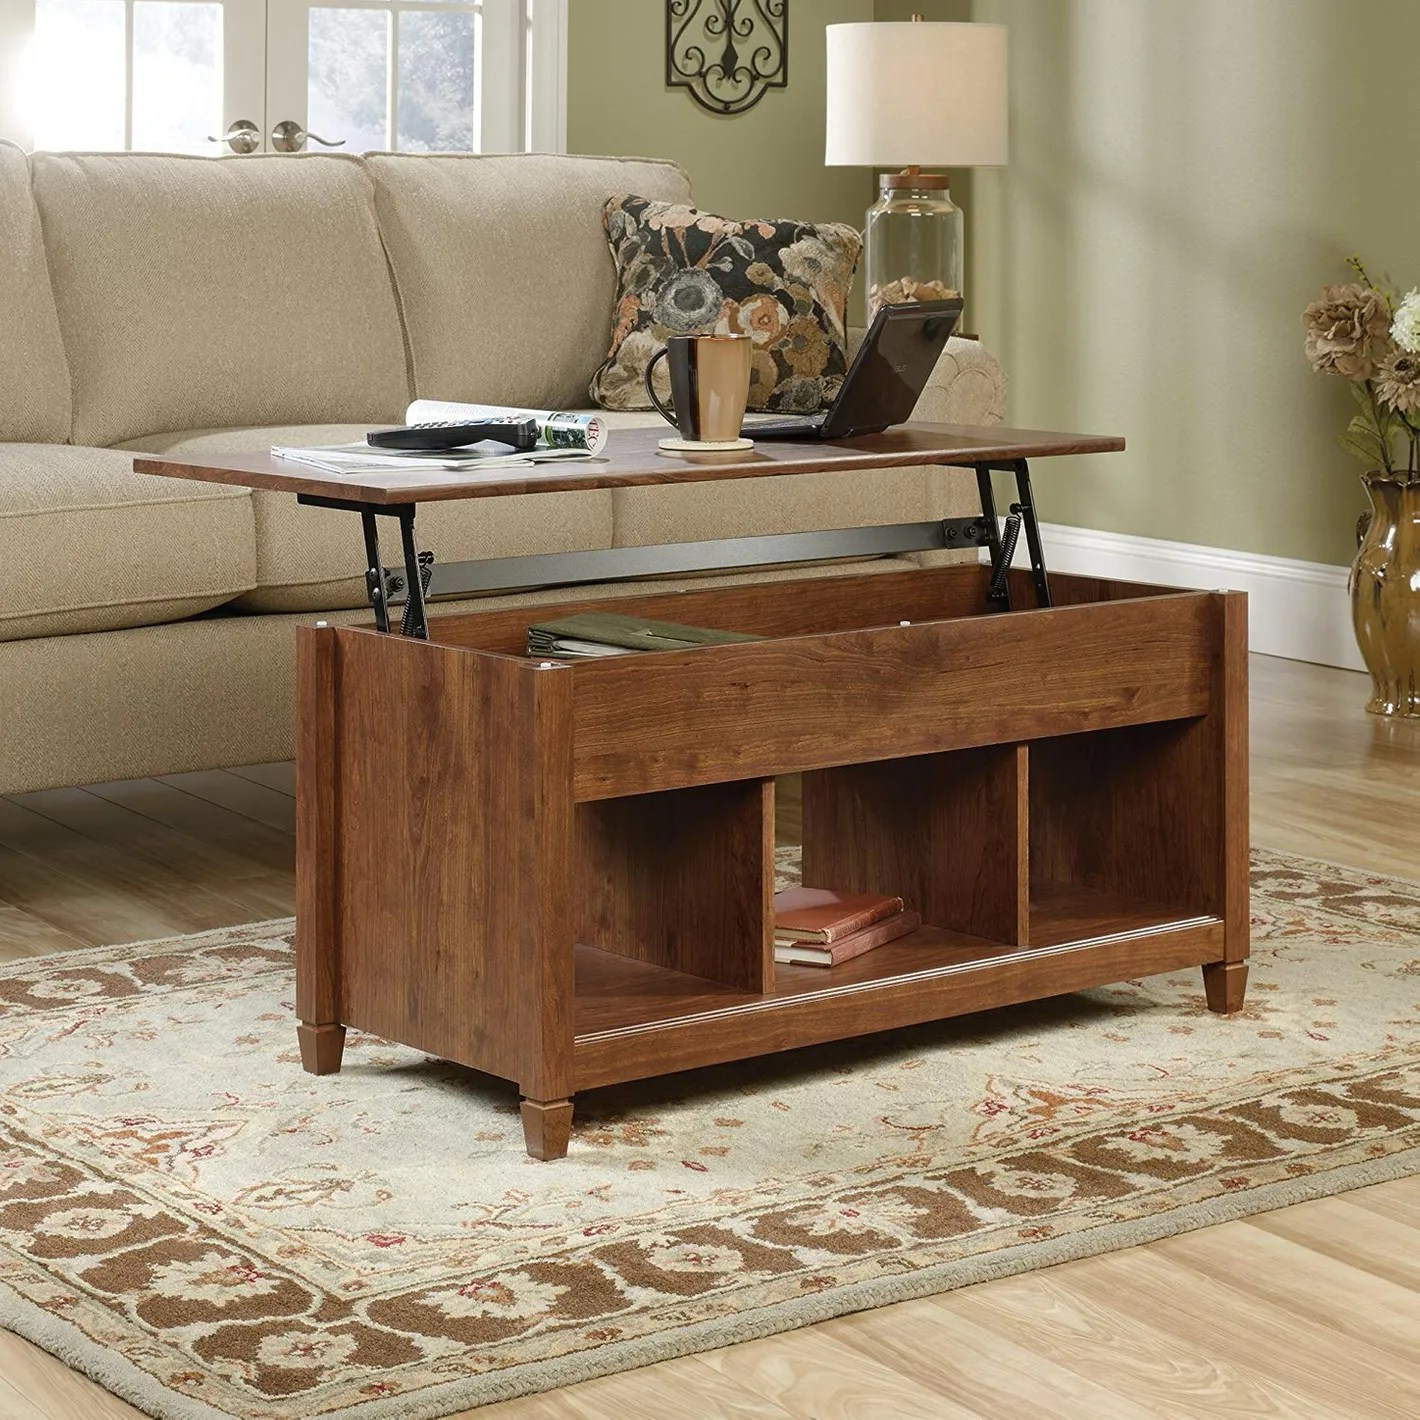 amazon com living room furniture purple ideas pictures 15 best dining tables and sets on 2018 sauder 419399 coffee table auburn cherry at